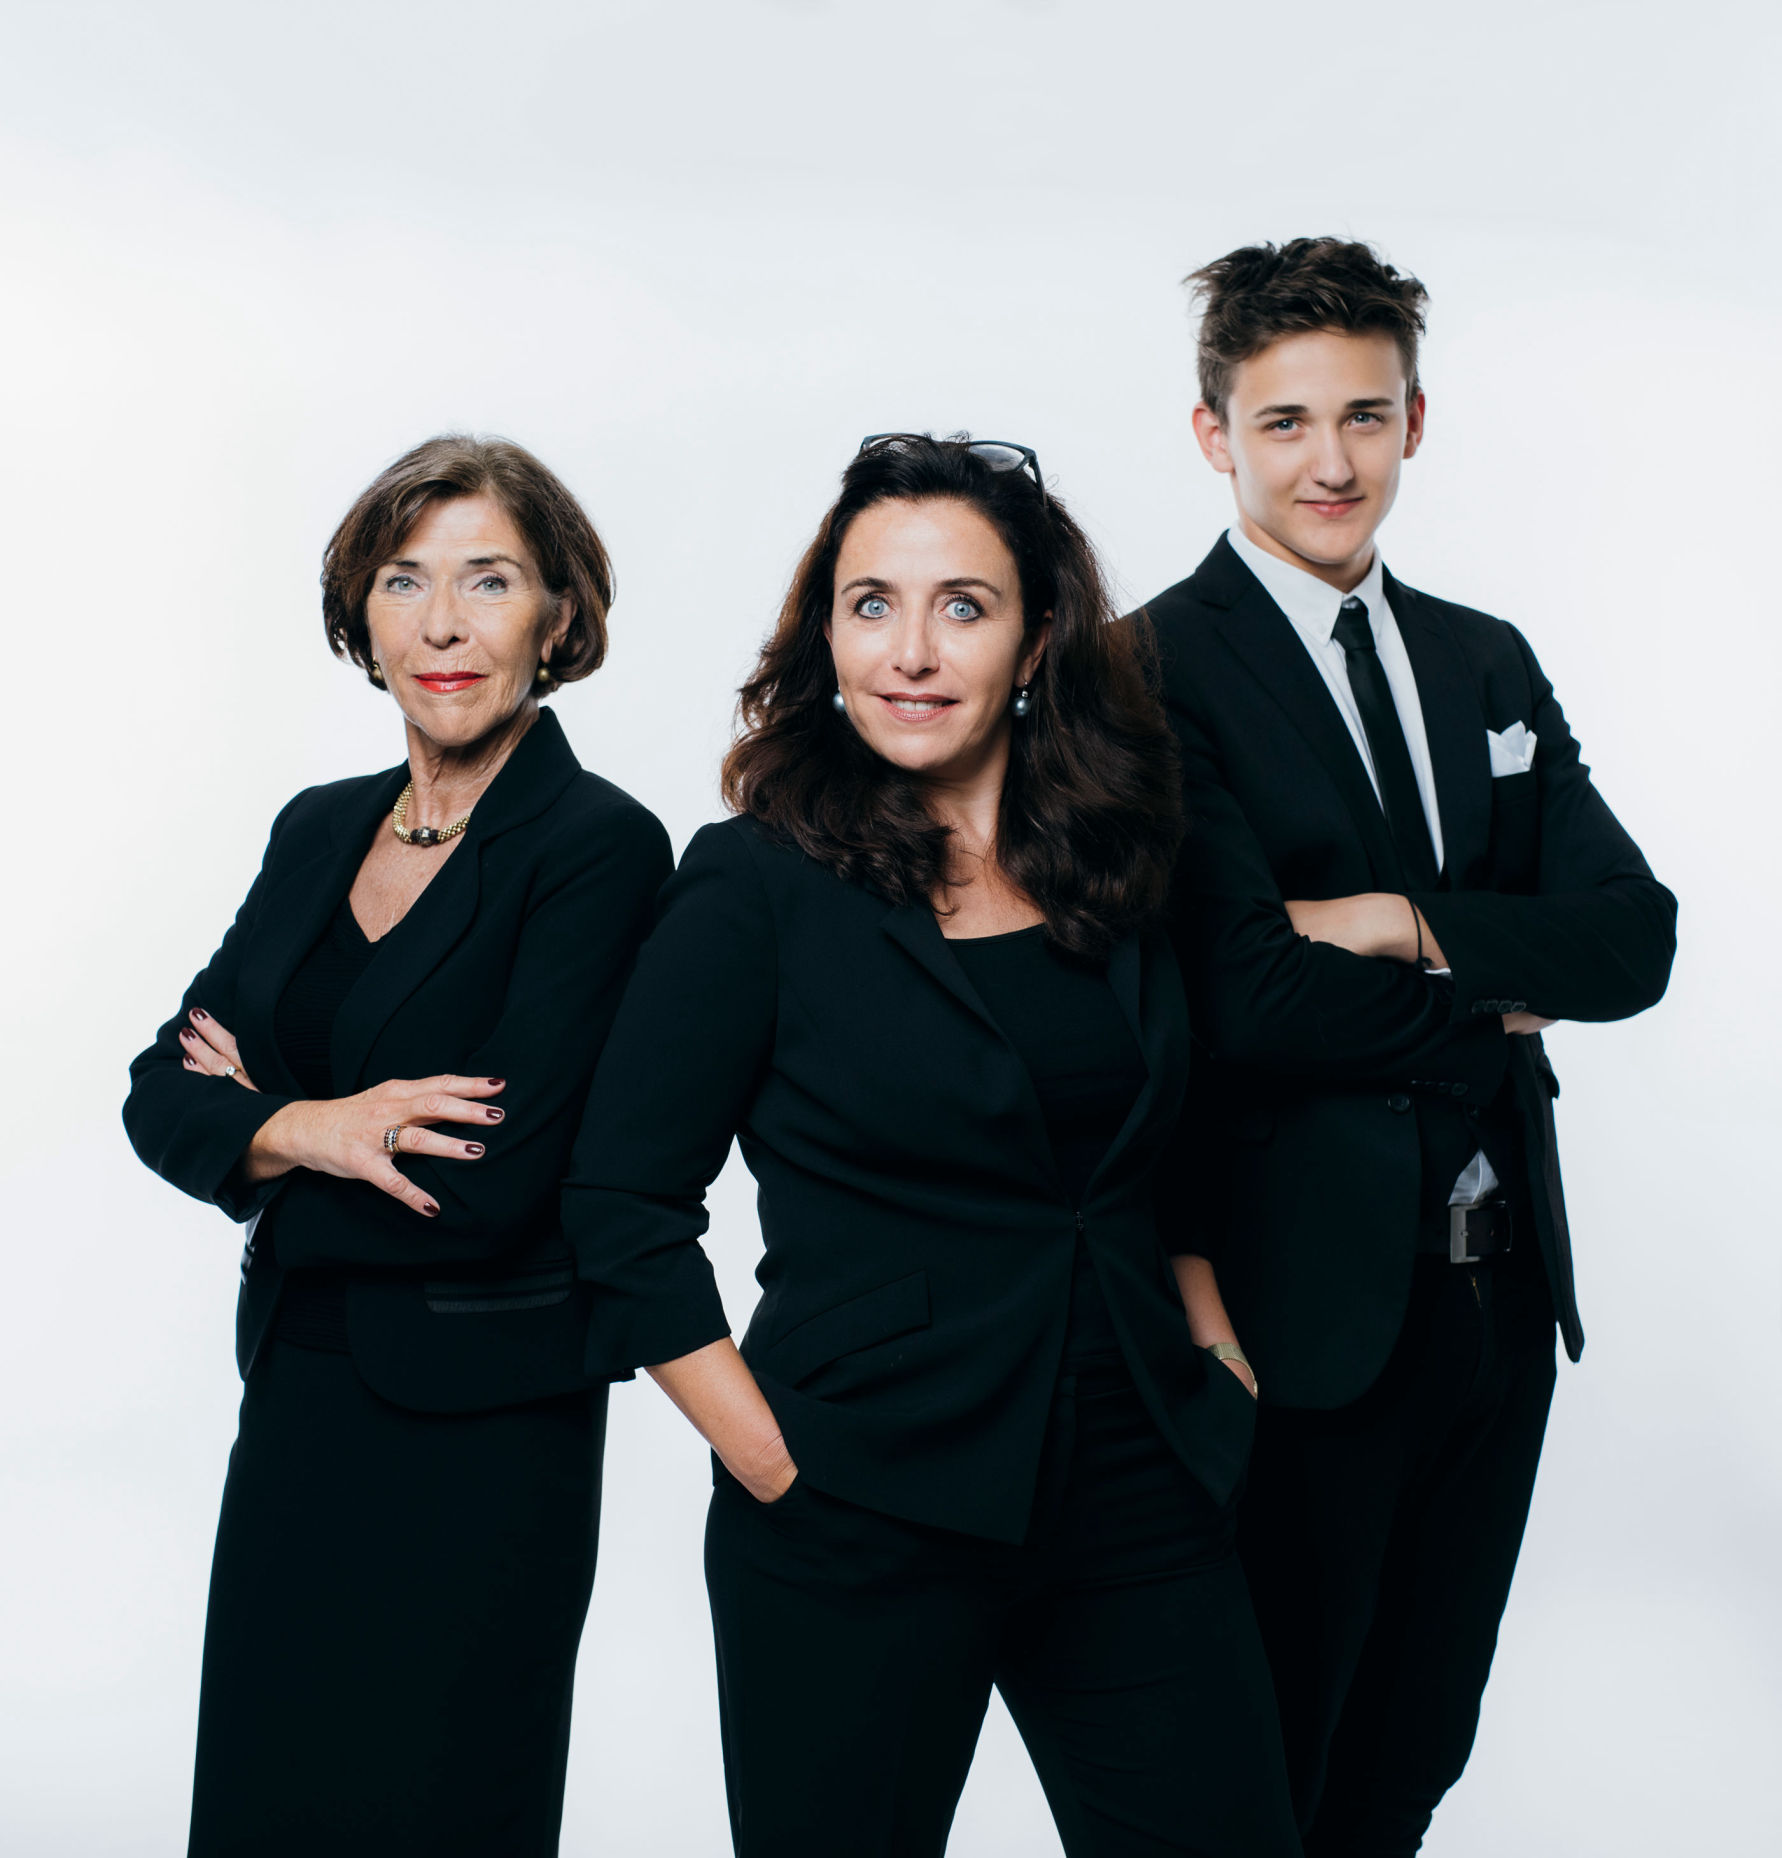 Gaube family business: founder Elisabeth Gaube, managing director Martina Silly-Gaube and young talent Martin Silly